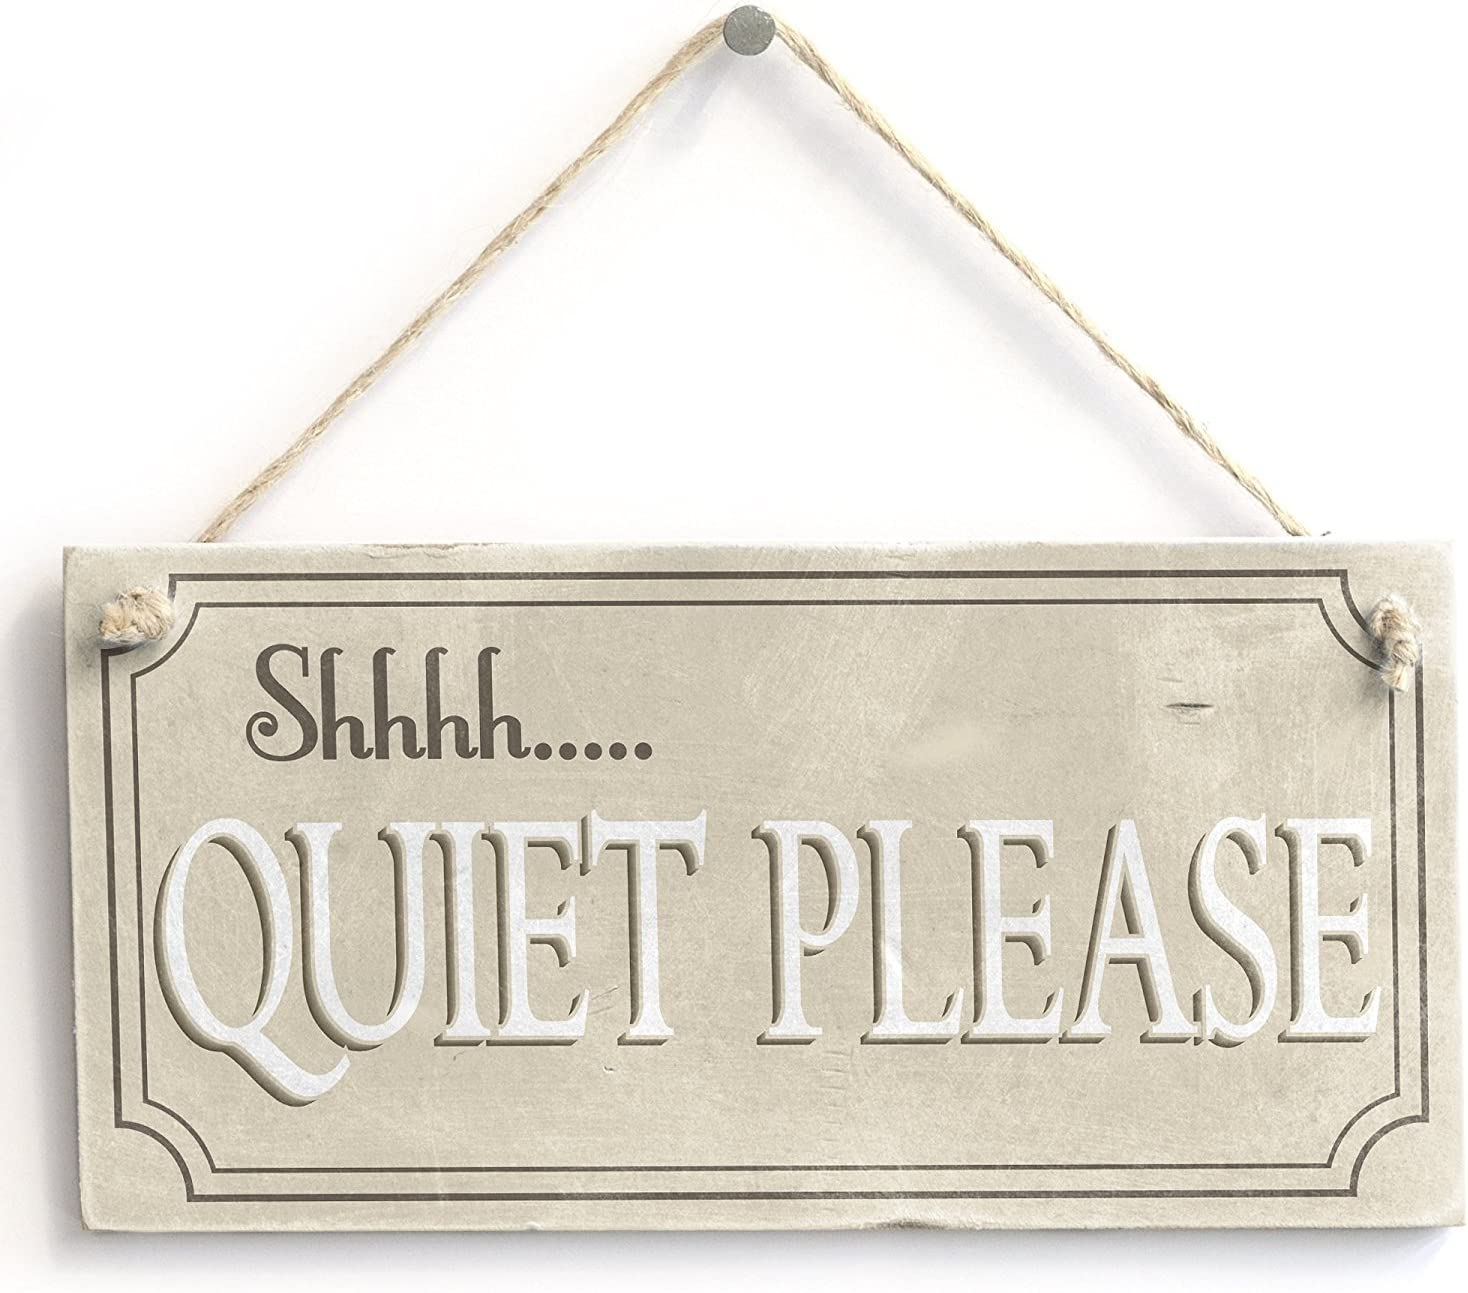 Meijiafei Shhhh. Quiet Please - Rustic Hanging PVC Library Home Decor Sign10 x5